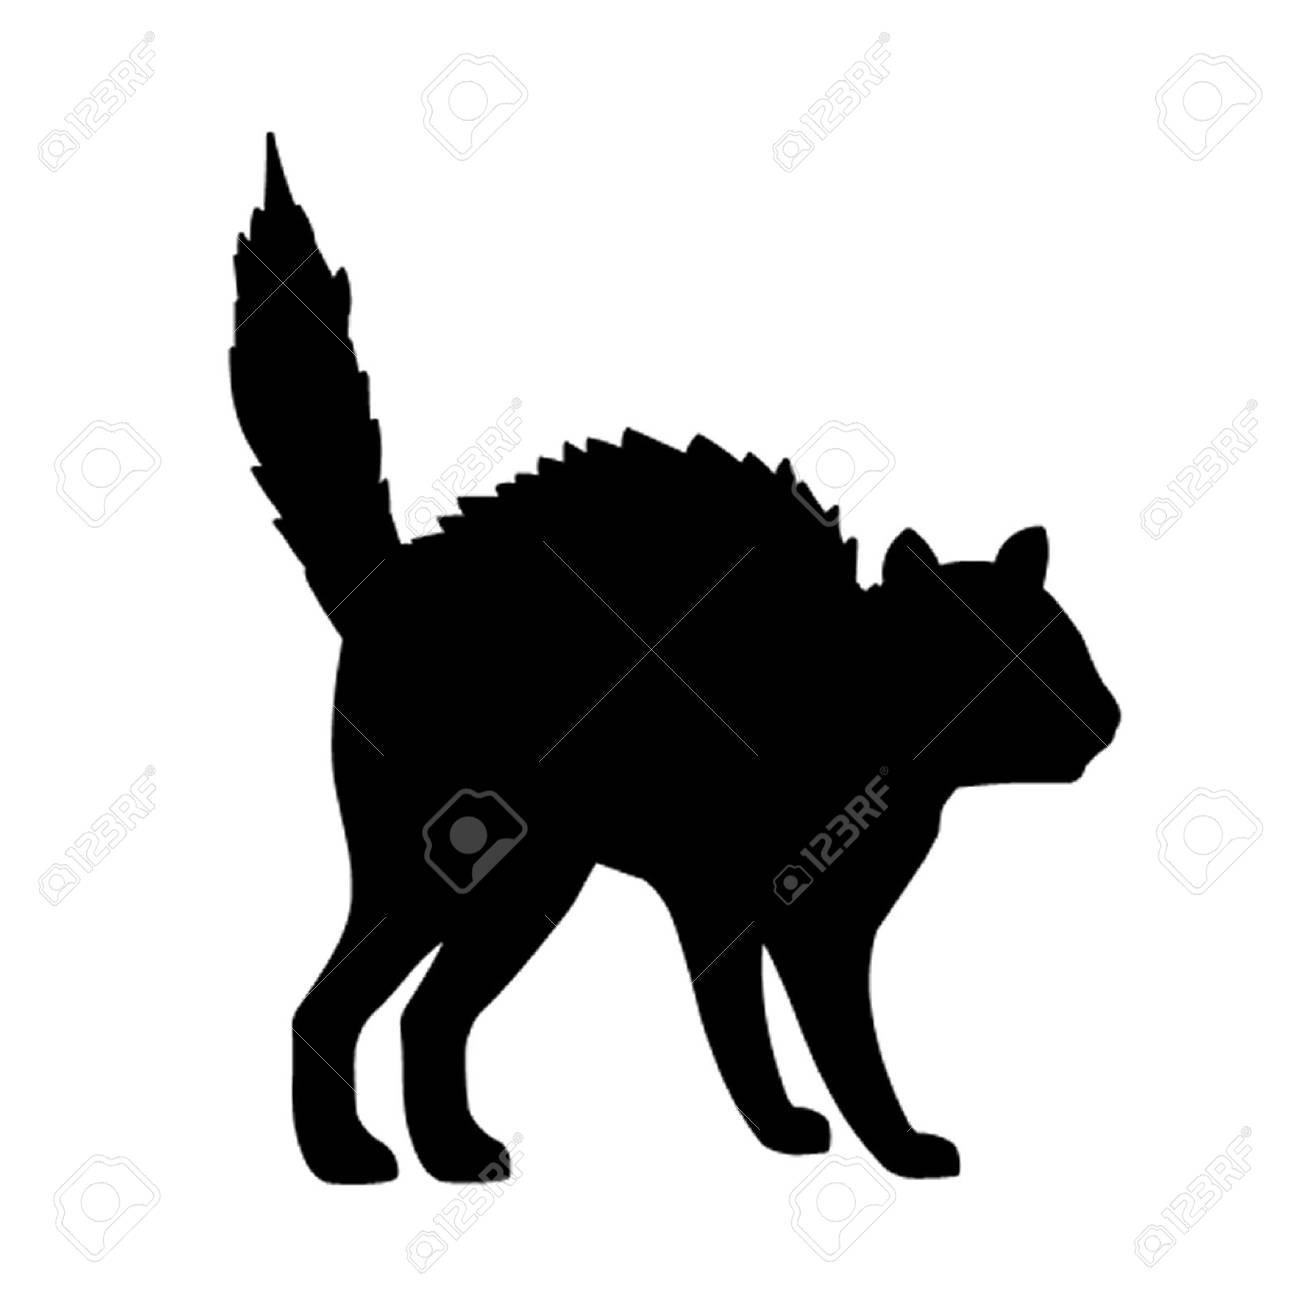 halloween cat cat in halloween pose illustration - Black Cat Silhouette Halloween